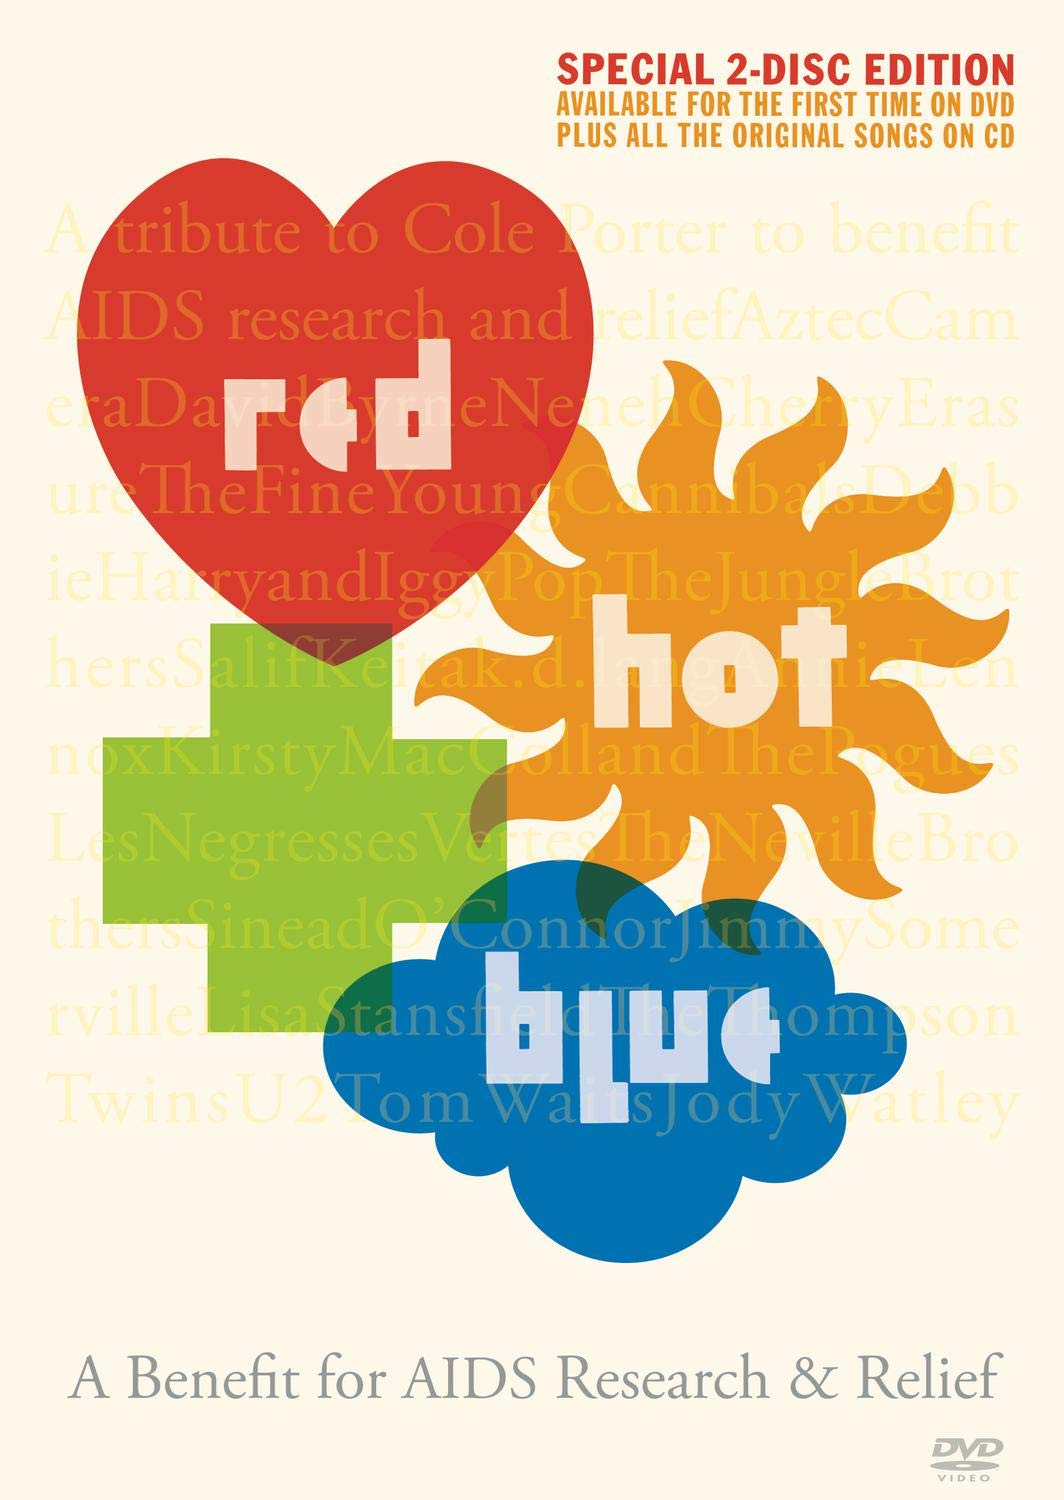 Red Hot + Blue: A Tribute To Cole Porter by Sony